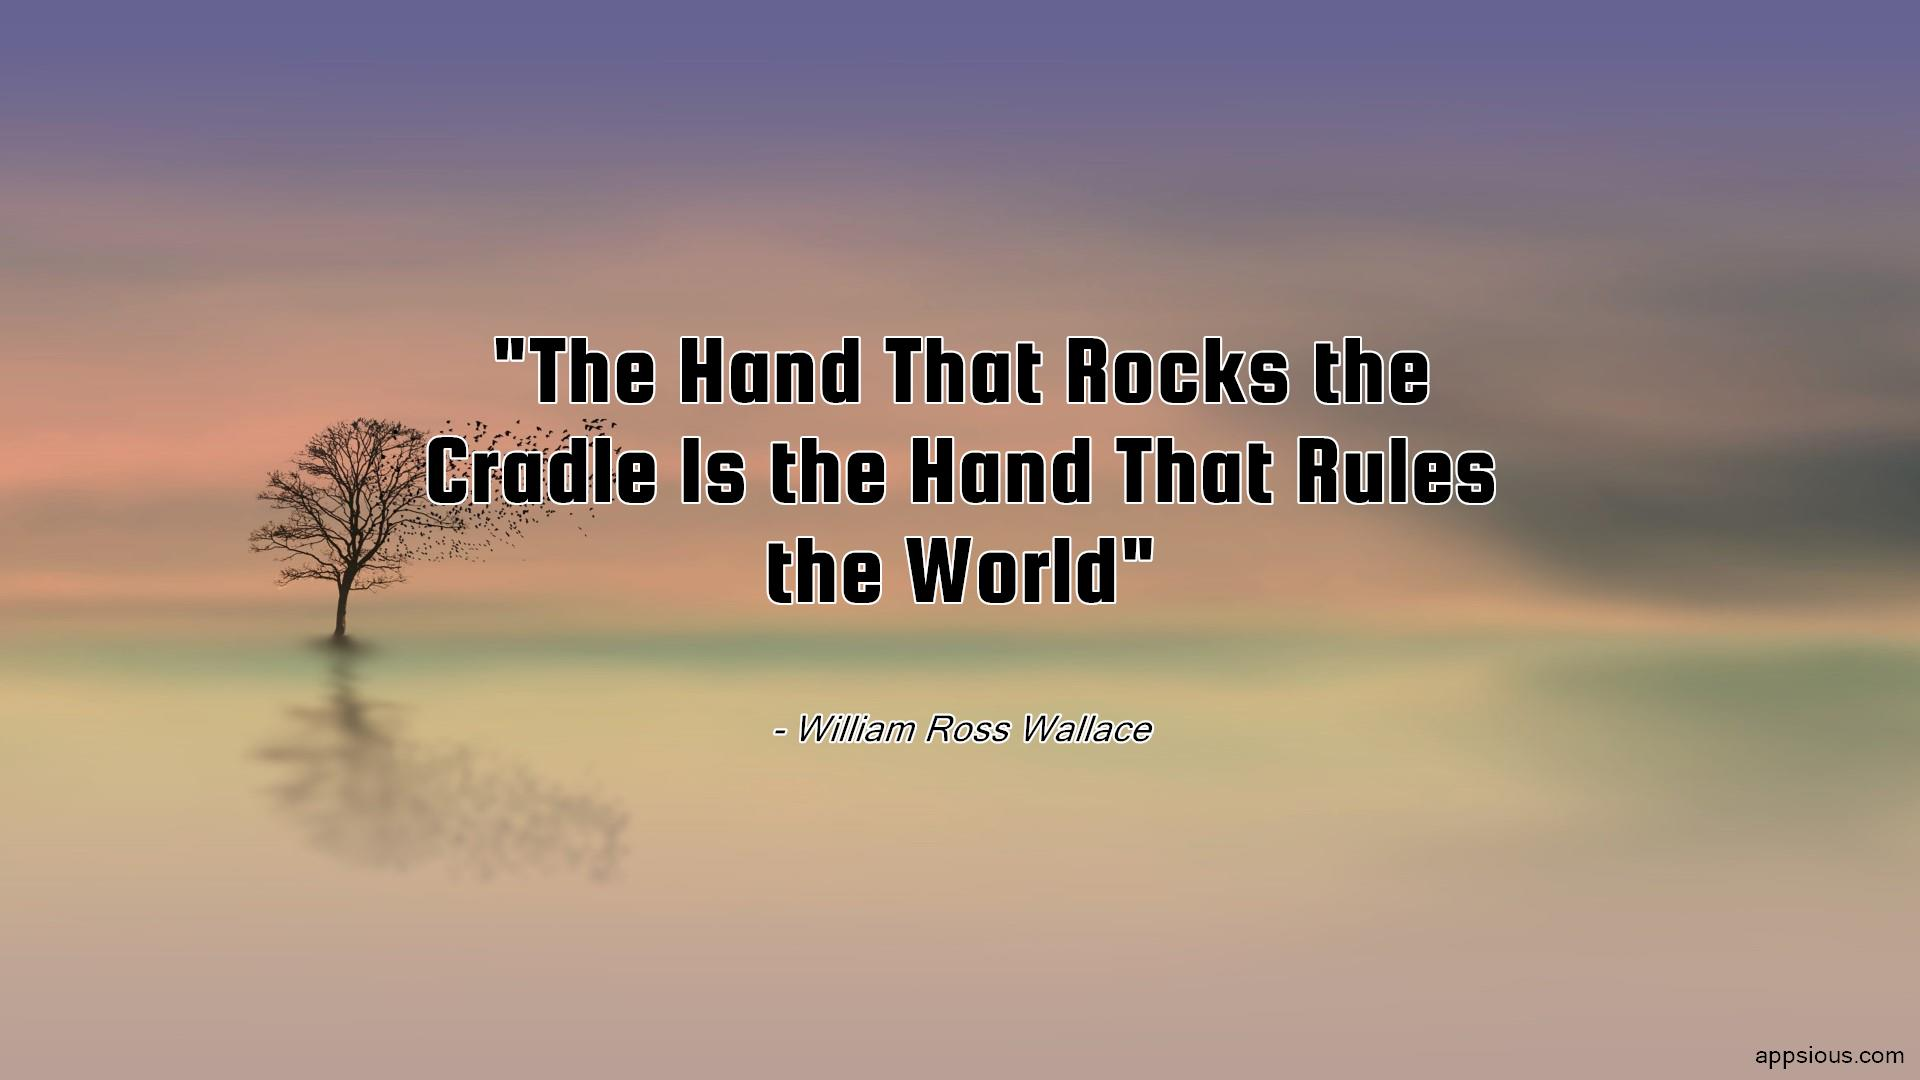 The Hand That Rocks the Cradle Is the Hand That Rules the World